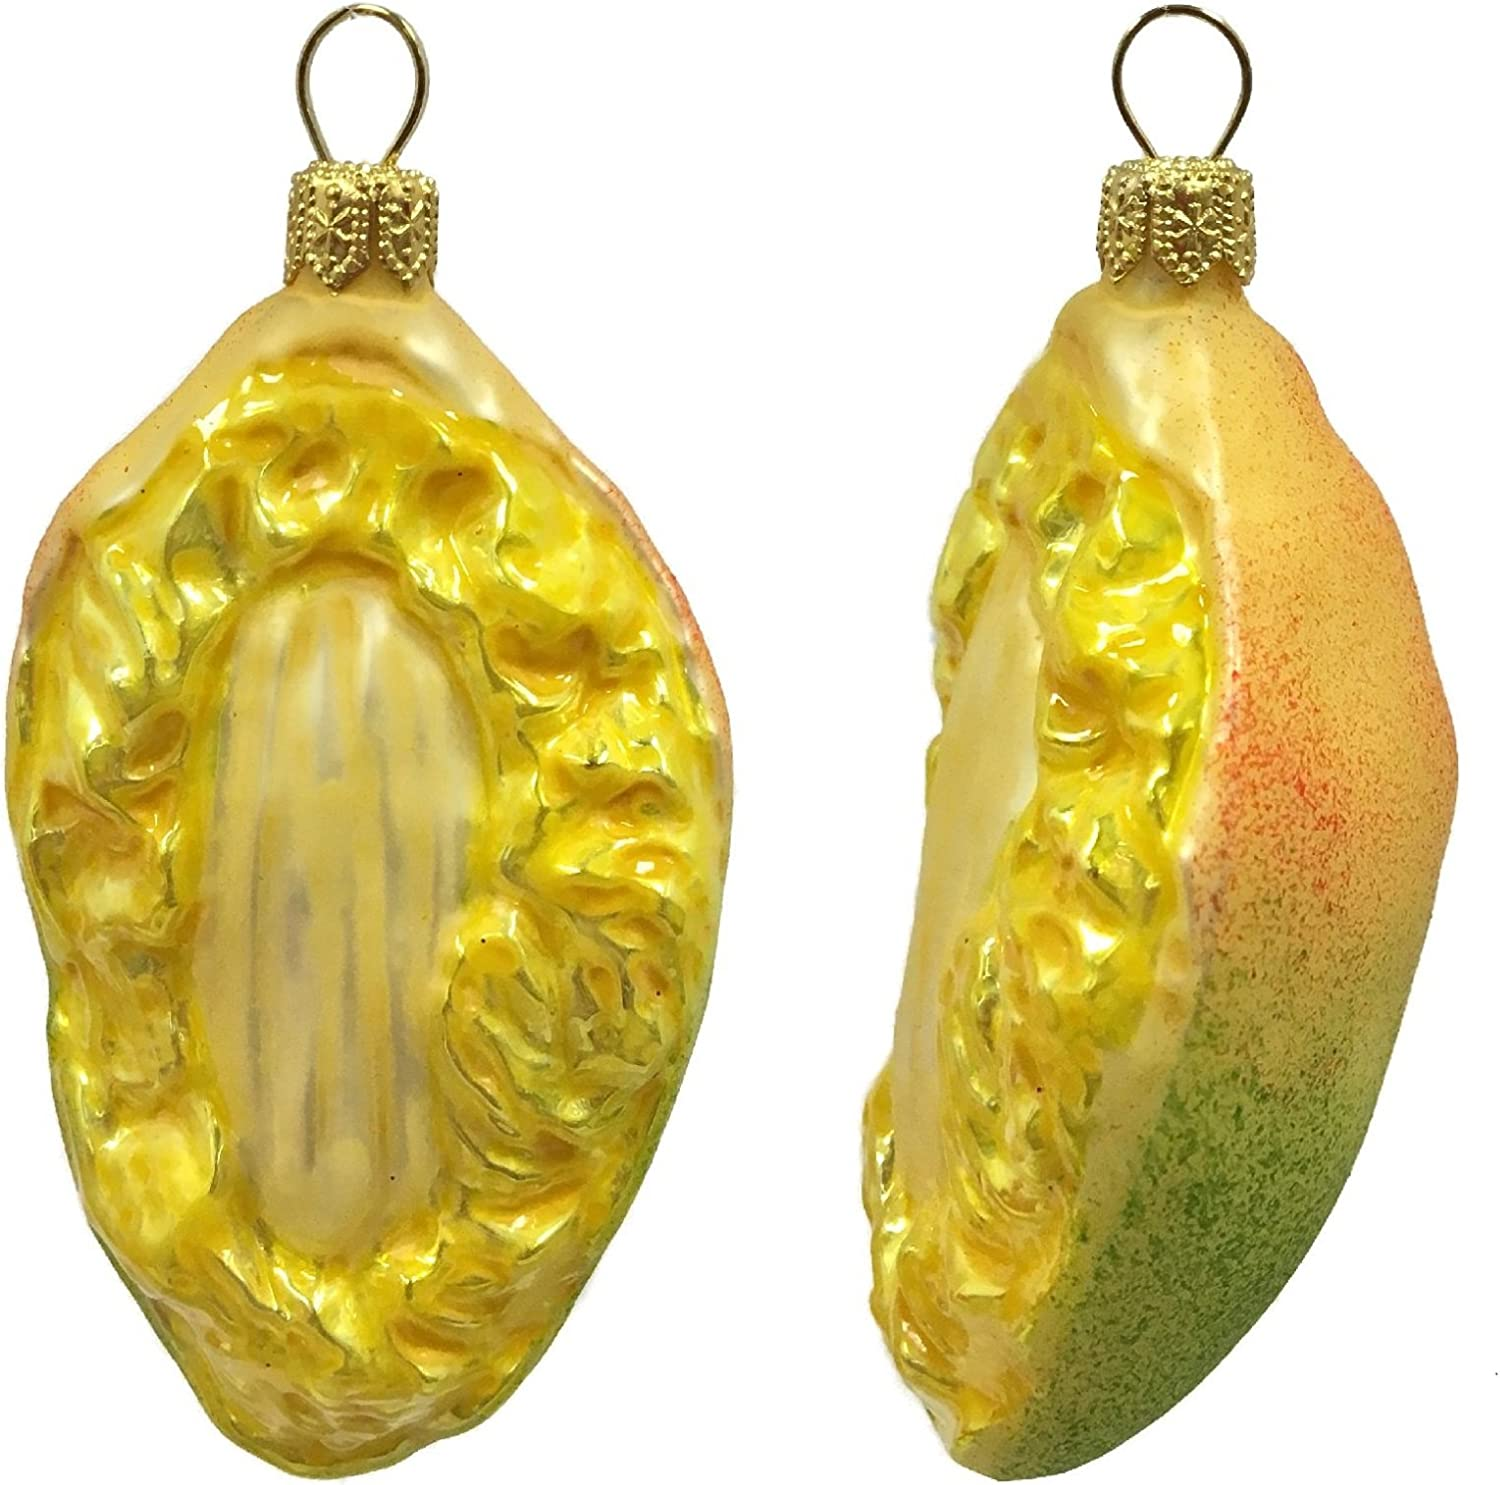 Pinnacle Peak Trading Company Slice of Mango Fruit Polish Glass Christmas Ornament Food Decoration Set of 2